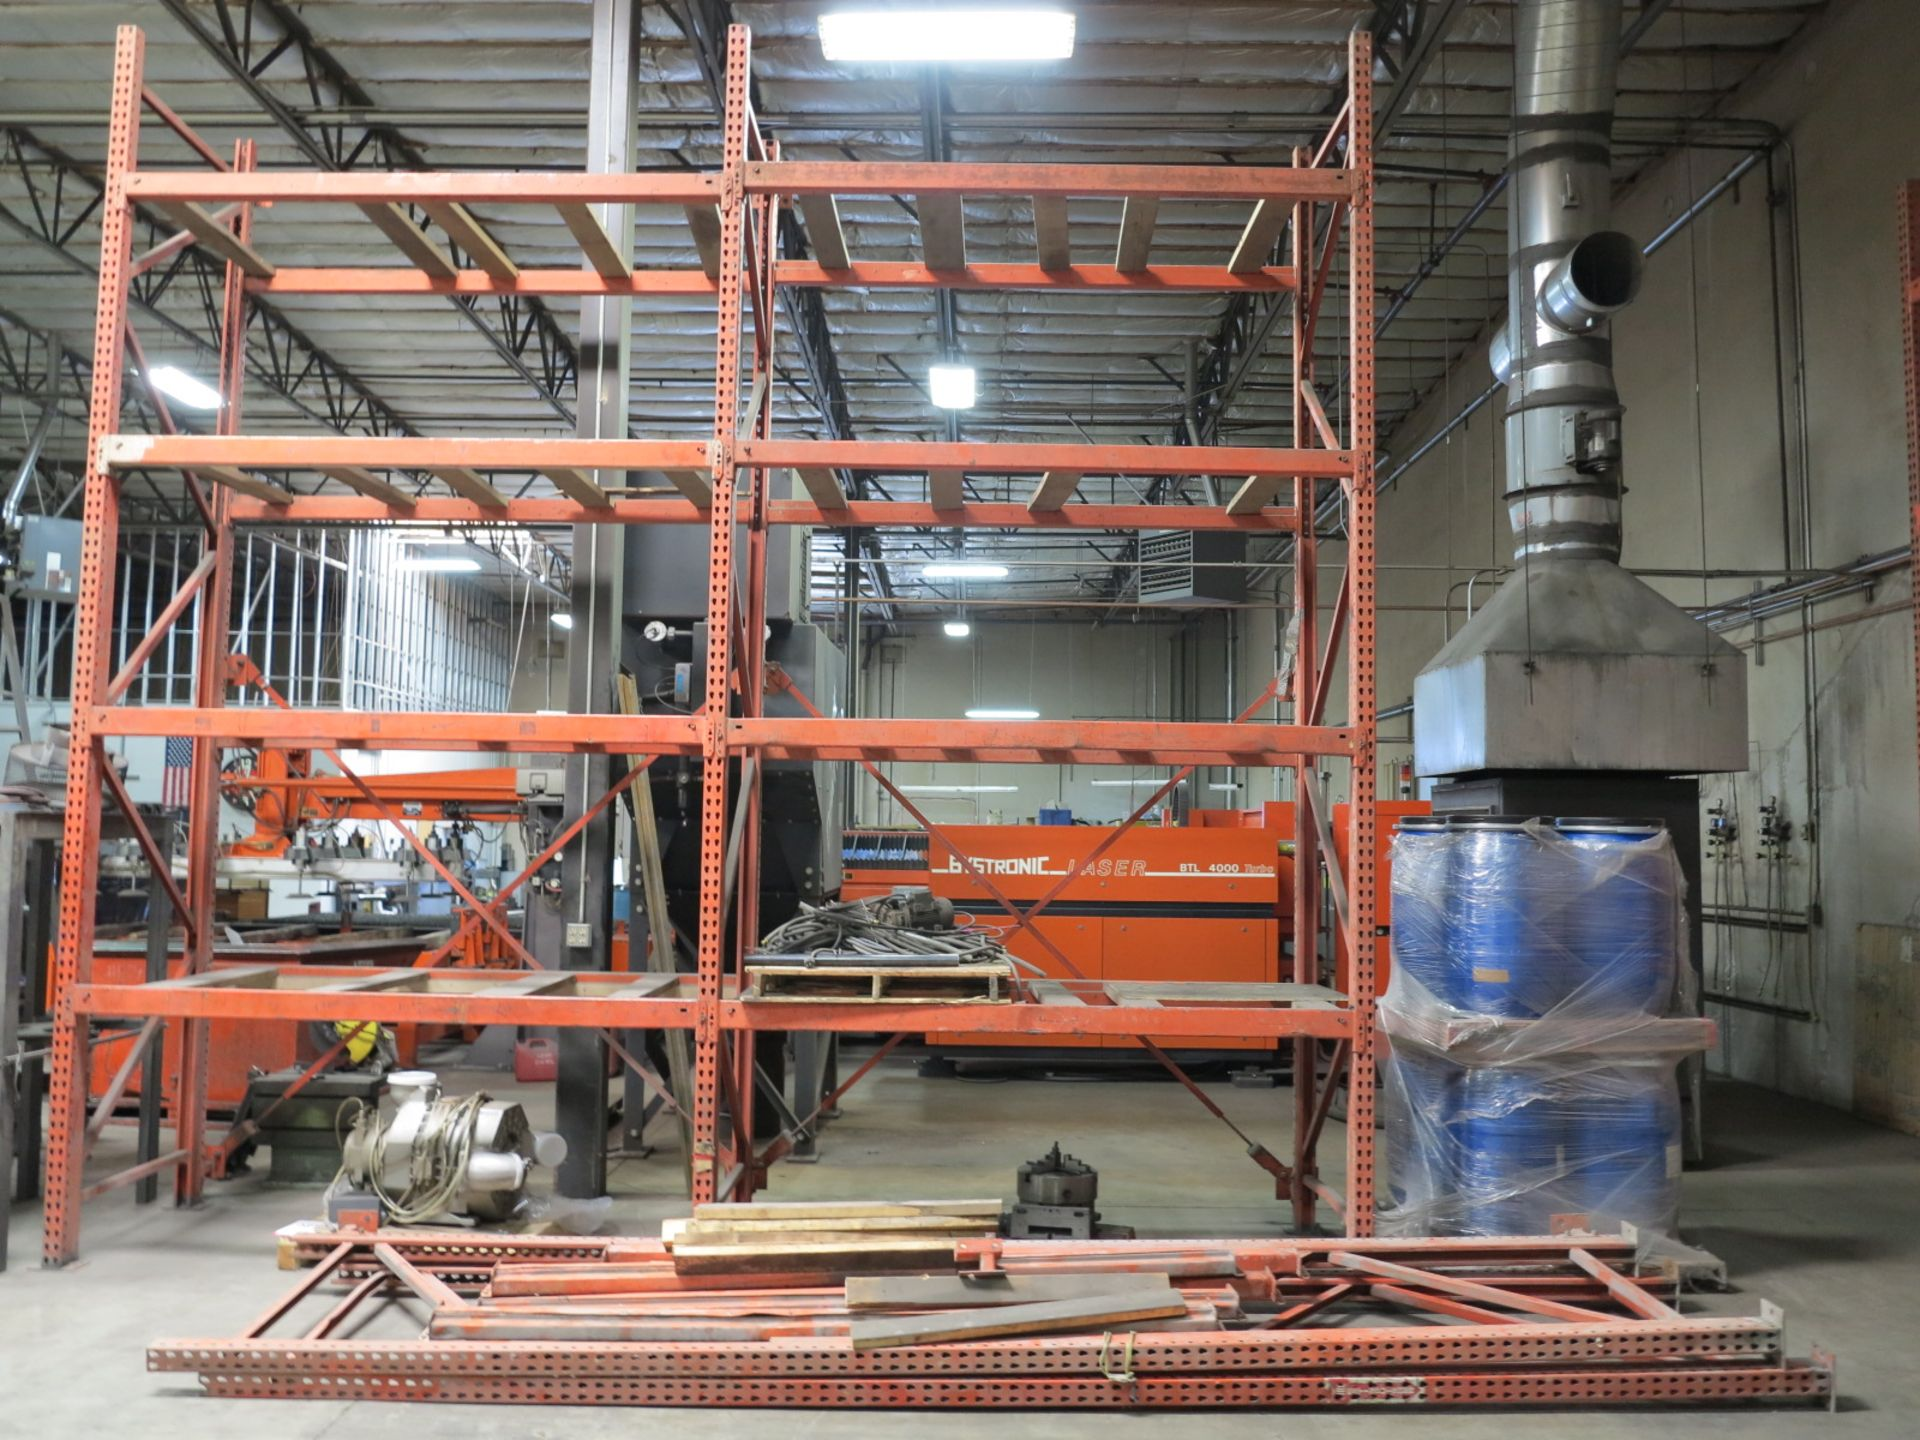 """Lot 18 - LOT - (6) SECTIONS OF PALLET RACKING, 94"""" BEAMS, 16' UPRIGHTS, CONTENTS NOT INCLUDED"""